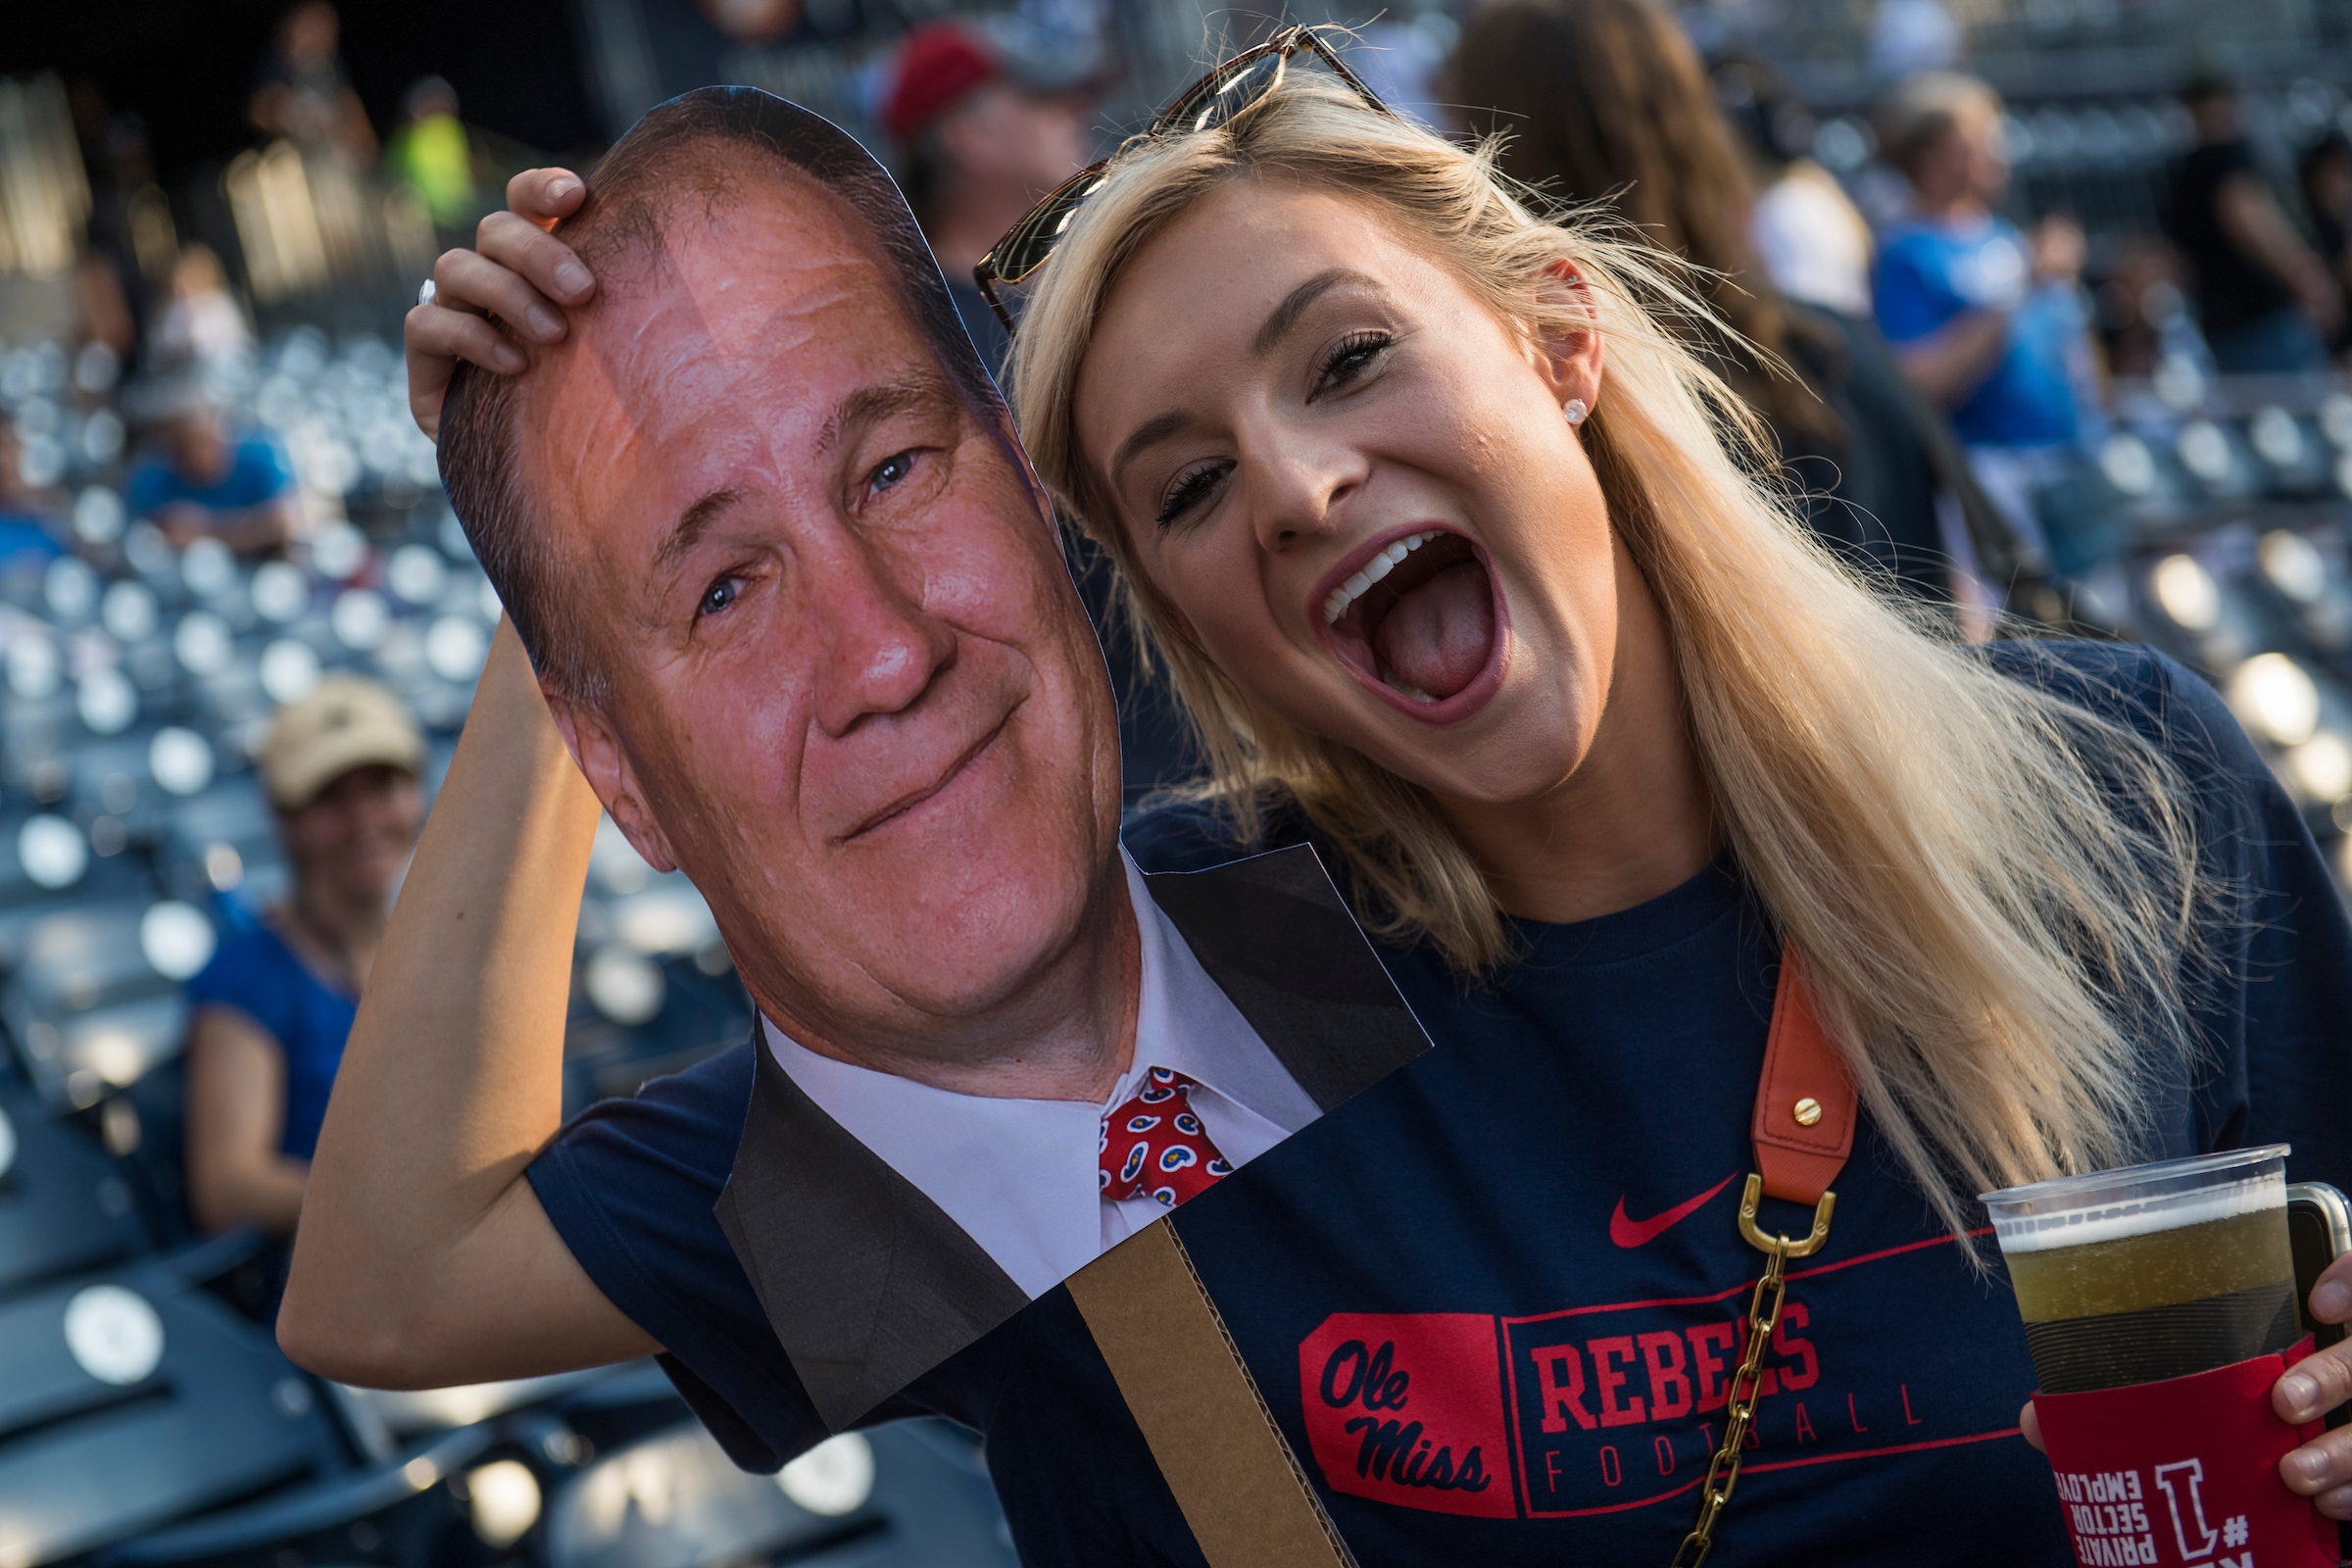 UNITED STATES - JUNE 15: A fan poses with a cut out of Rep. Trent Kelly, R-Miss., during the 56th Congressional Baseball Game at Nationals Park on June 15, 2017. (Photo By Tom Williams/CQ Roll Call)